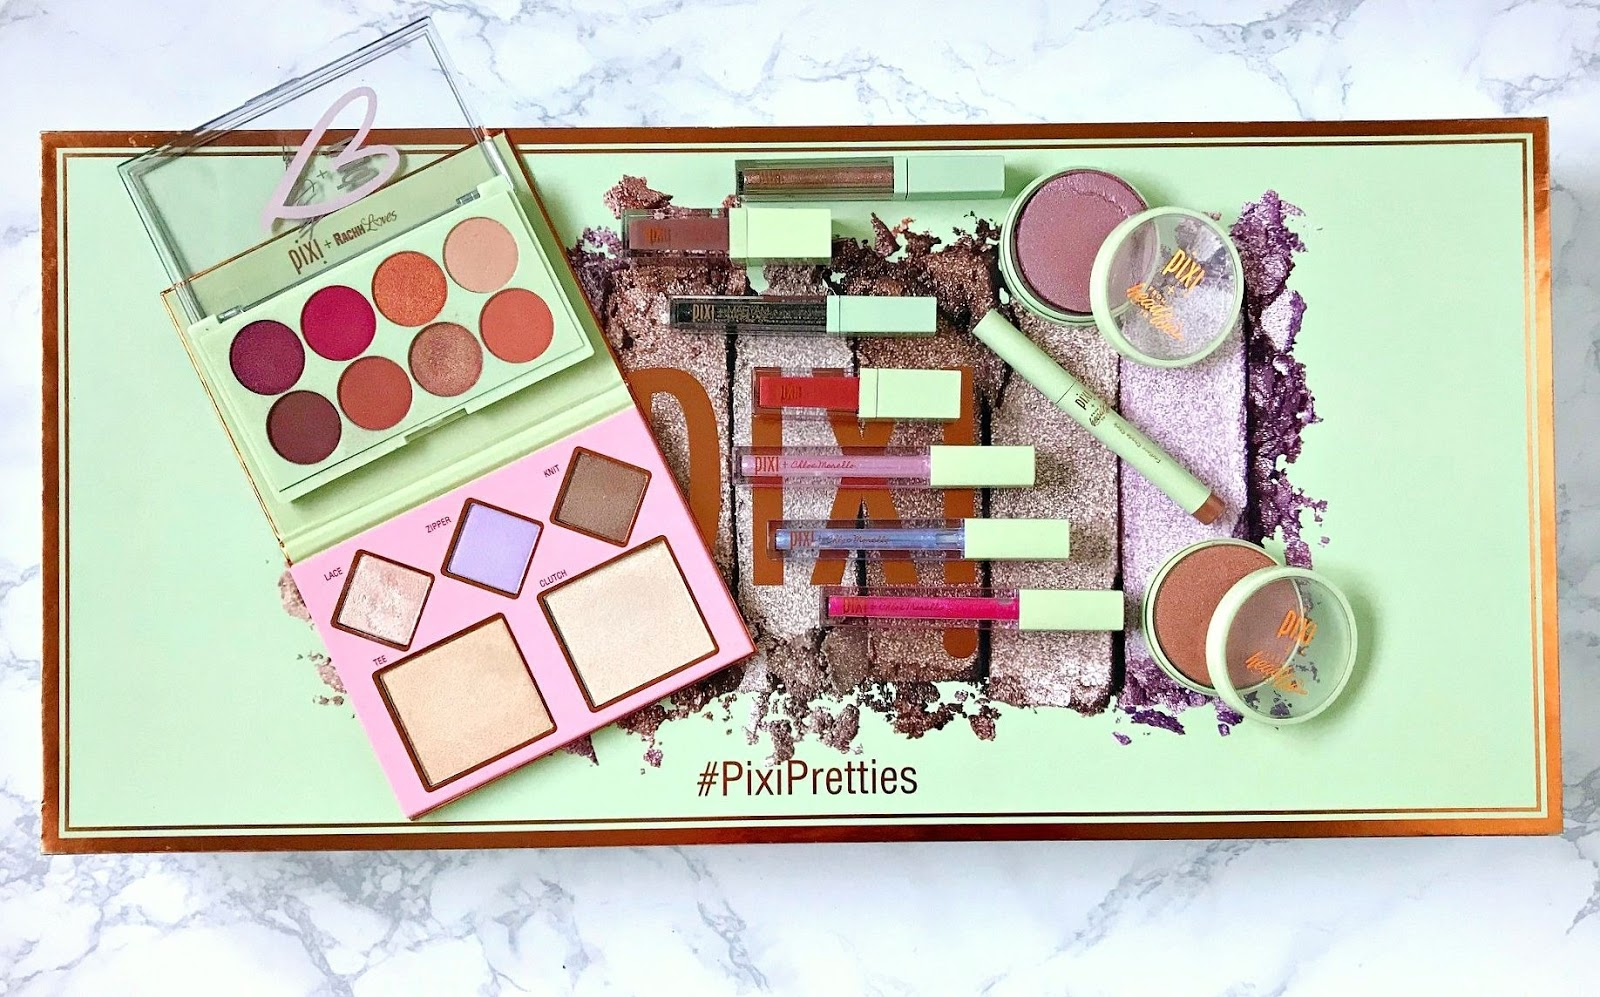 Pixi, Pixi x Chloe Morello, Pixi Pretties, Pixi Heart Defensor Eye <3 Palette, Pixi From Head to Toe Endless Shade Stick, Pixi From Head to Toe Glow-y Powder, Pixi RachhLoves The Layers Highlighting Palette, Pixi Maryam NYC Lit Kit